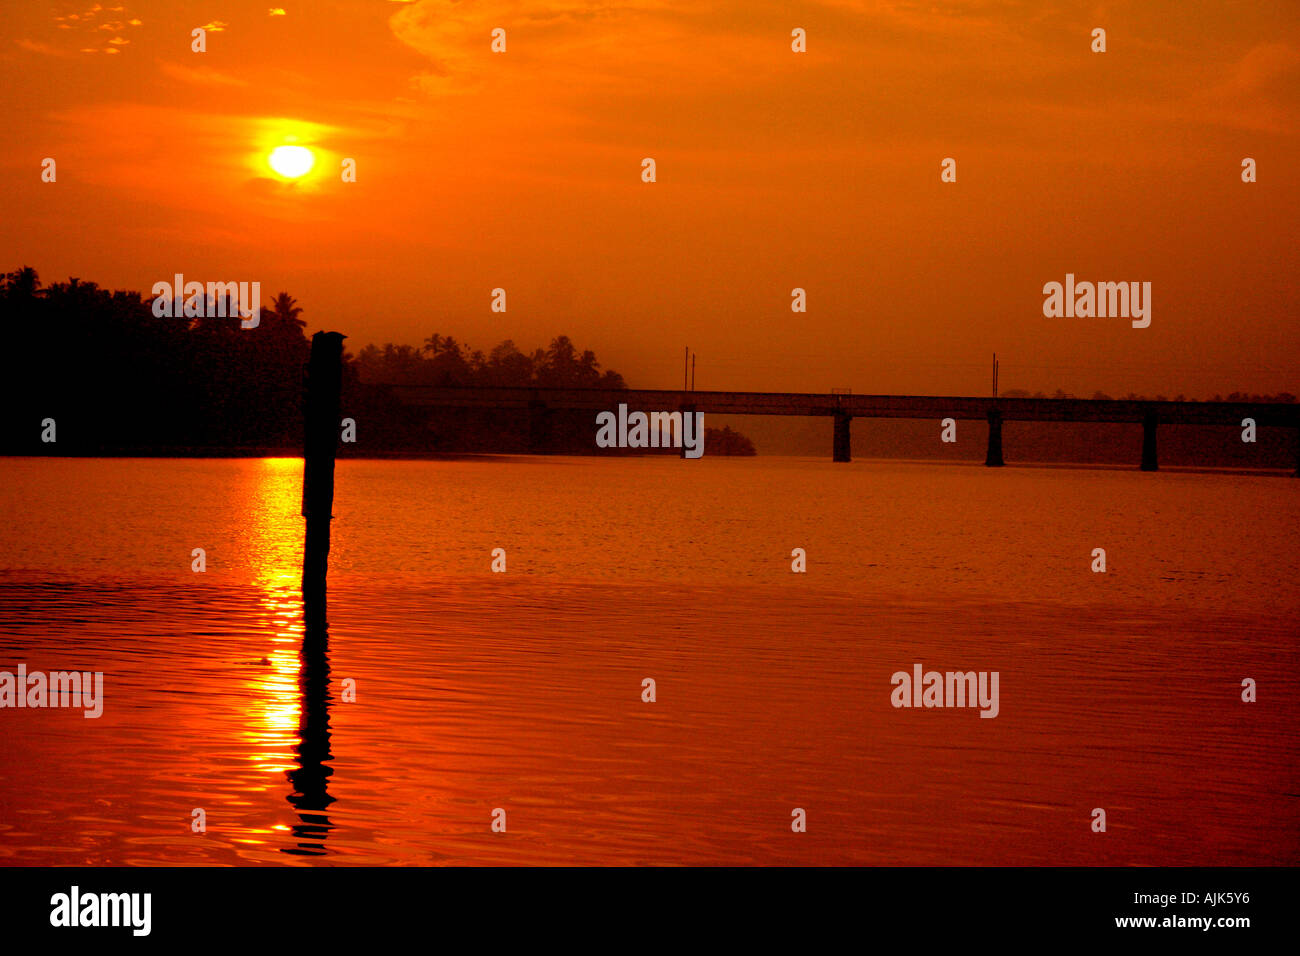 The yellowish glow of the rising sun, a morning view at Aluva, Kerala, India Stock Photo